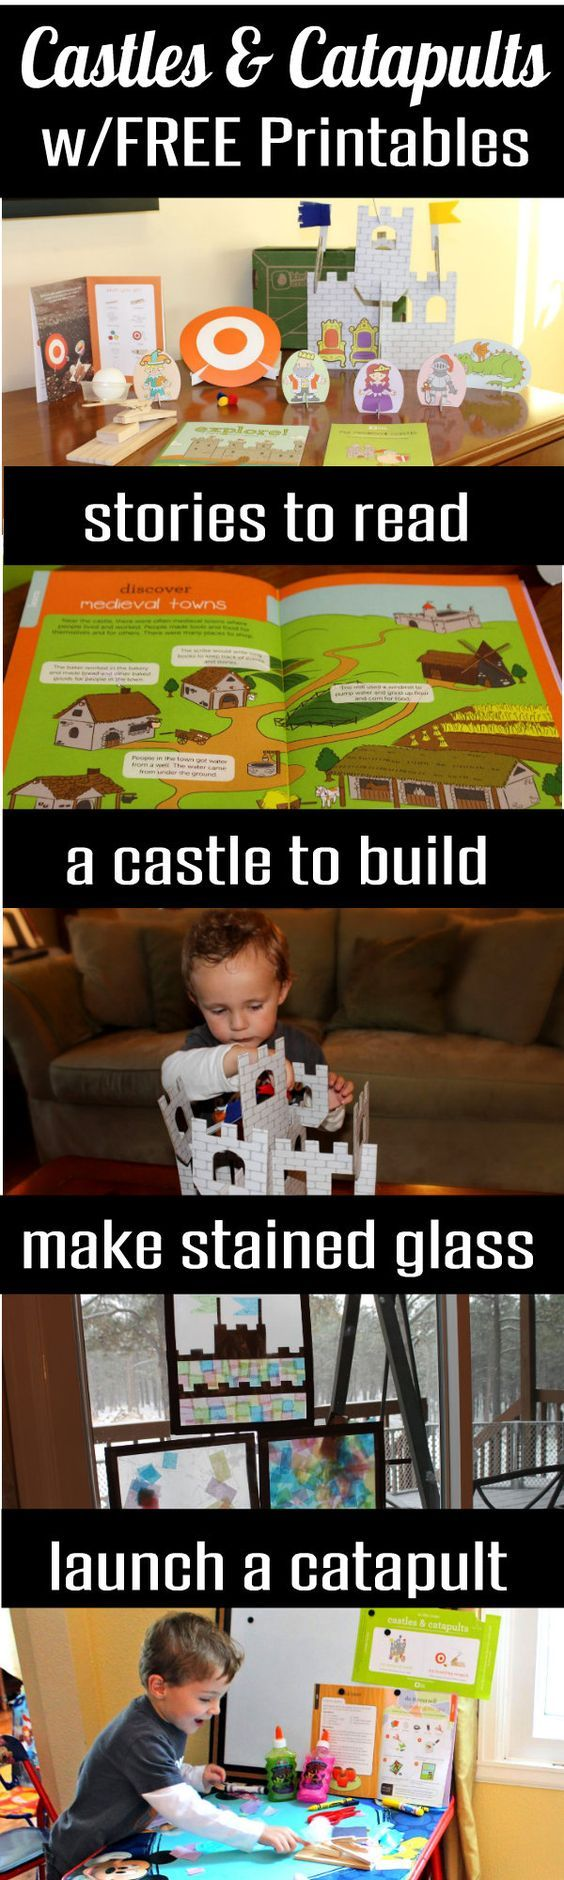 FREE Printables and Castle Play! If you have a preschooler, toddler, or young child at home who enjoys stories of knights, castles, catapults and shields, you will love this post. Itincludes a whole host of play ideas for preschoolers and activities for young children centered on a medieval theme. HappyandBlessedHome.com